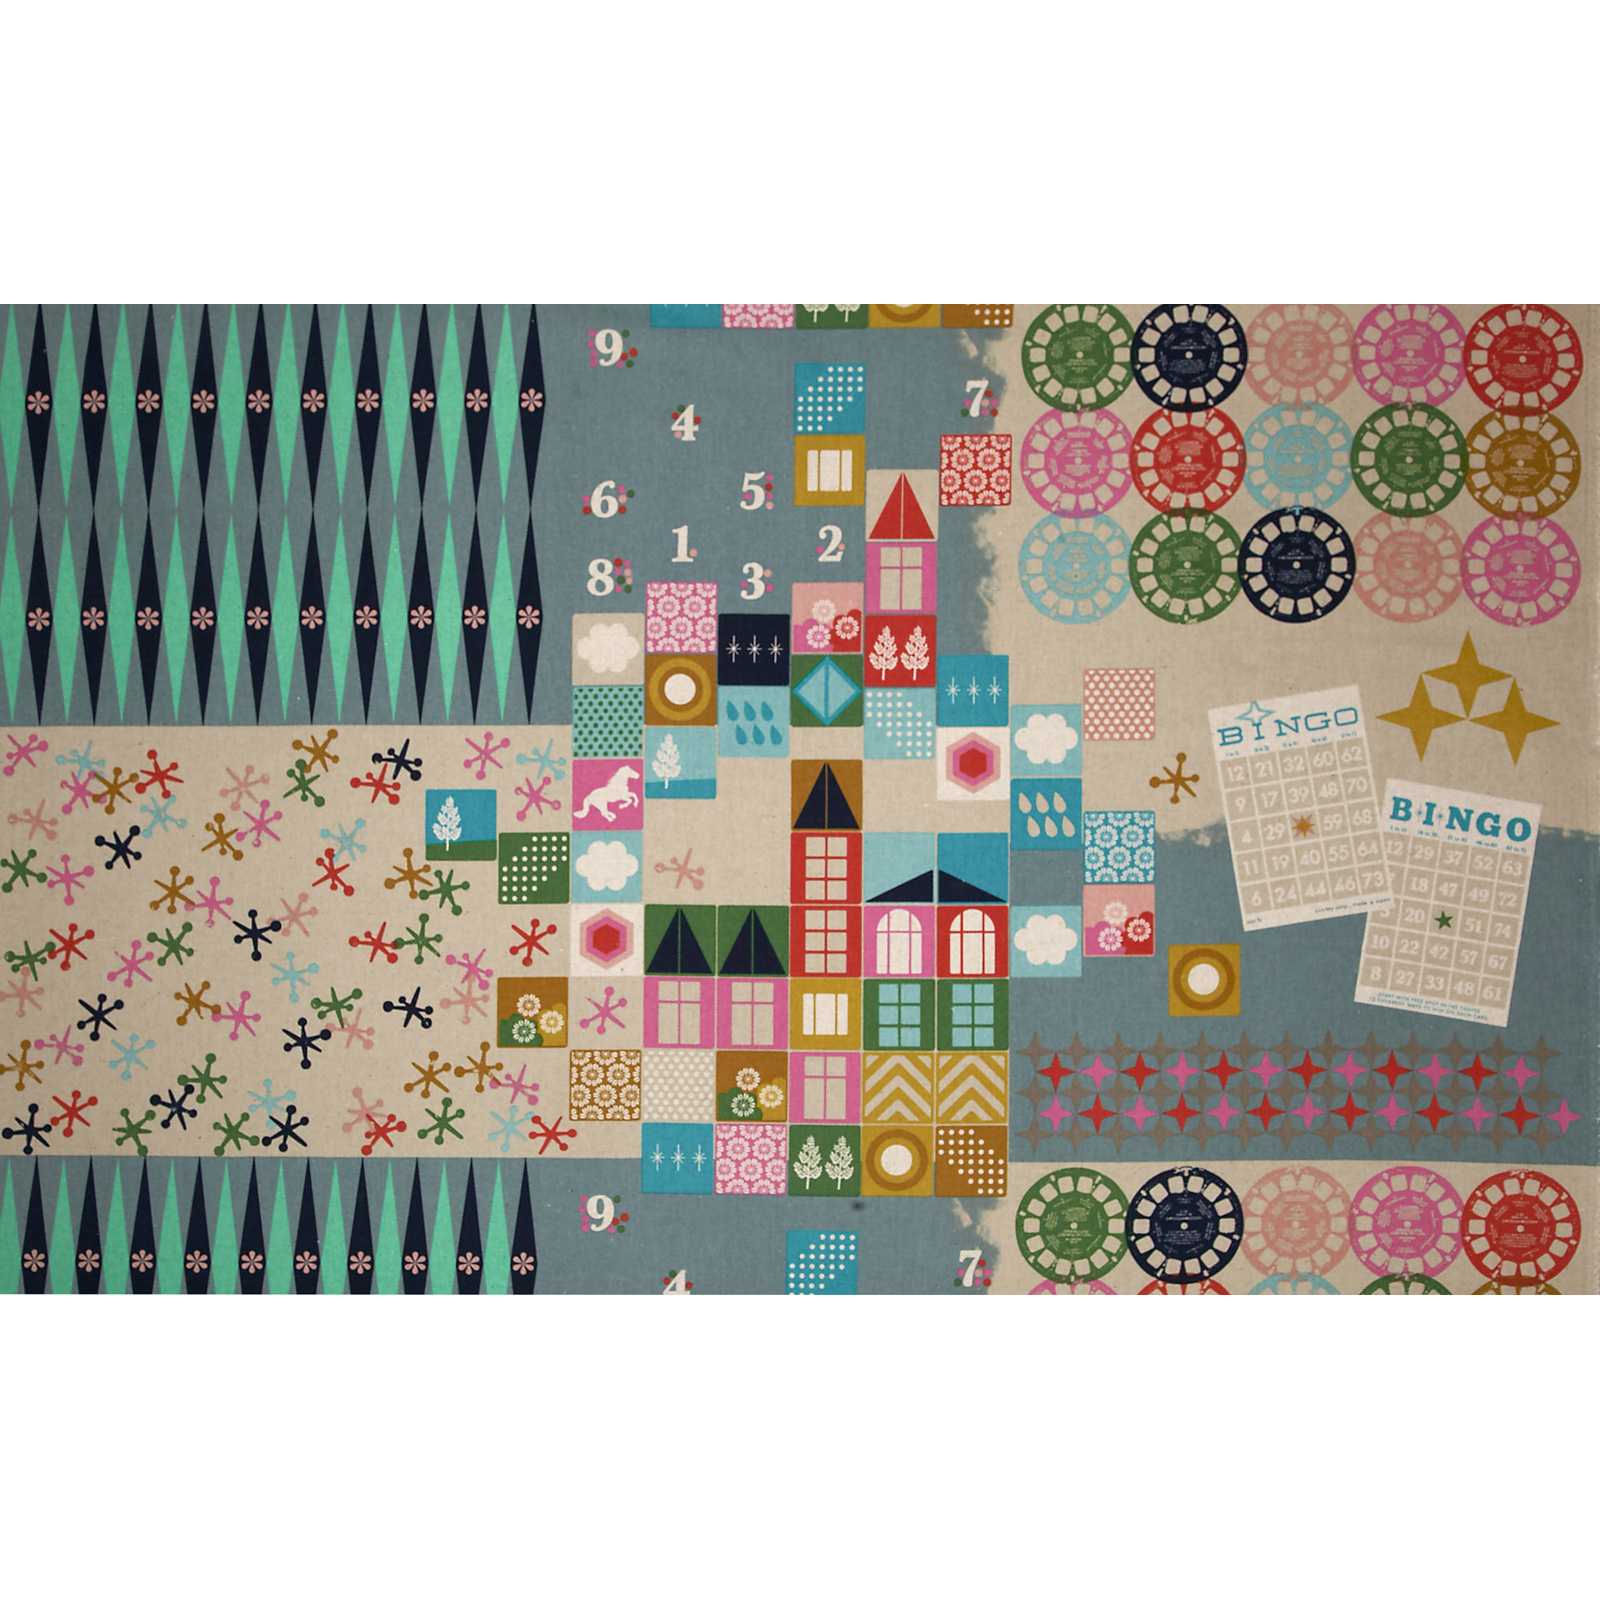 Image of Cotton + Steel Playful Canvas Playroom Teal Fabric